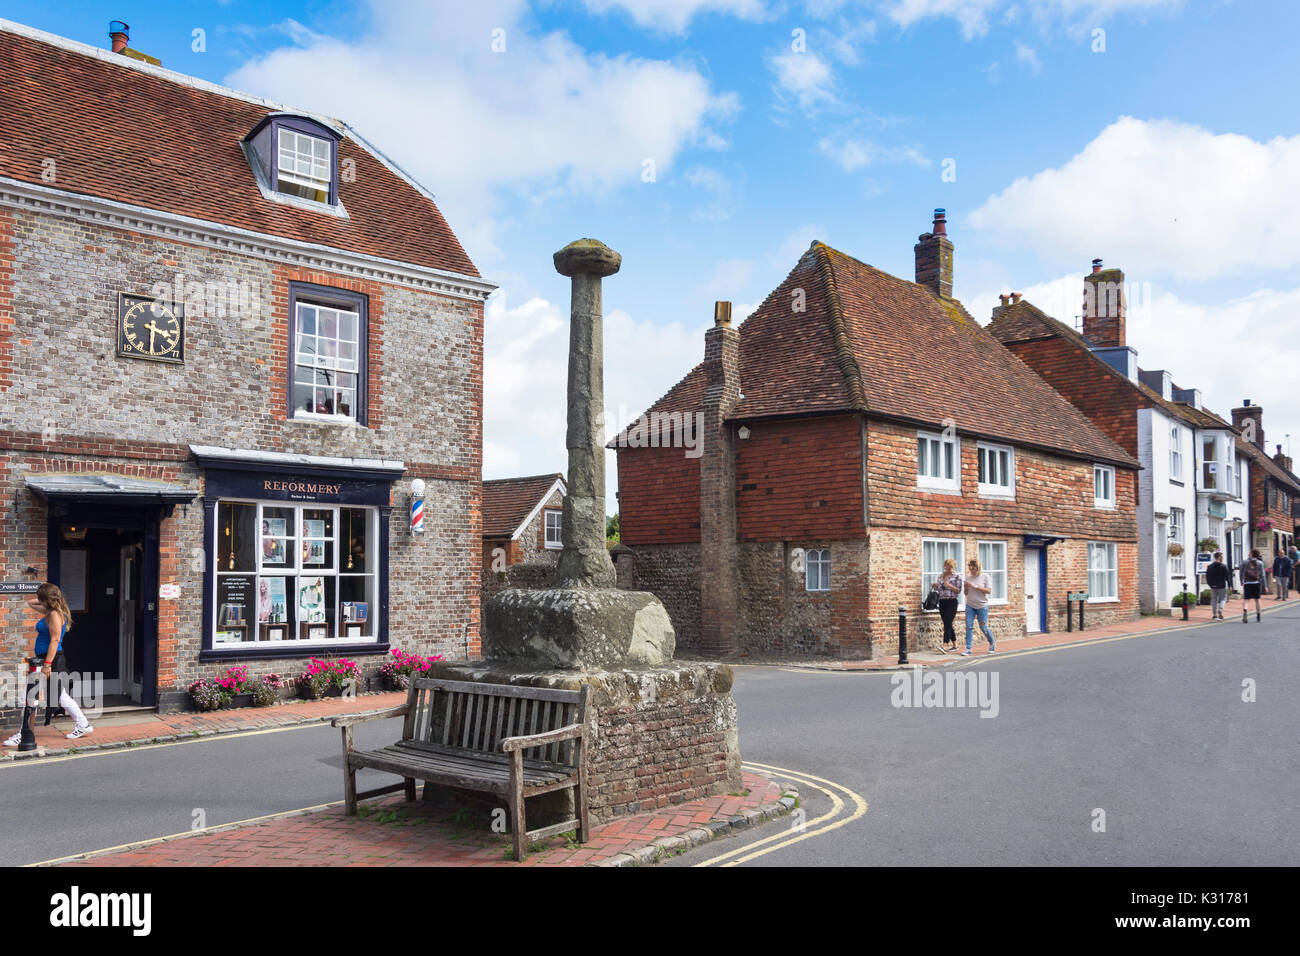 Medieval Market Cross in Market Square, High Street, Alfriston, East Sussex, England, United Kingdom - Stock Image